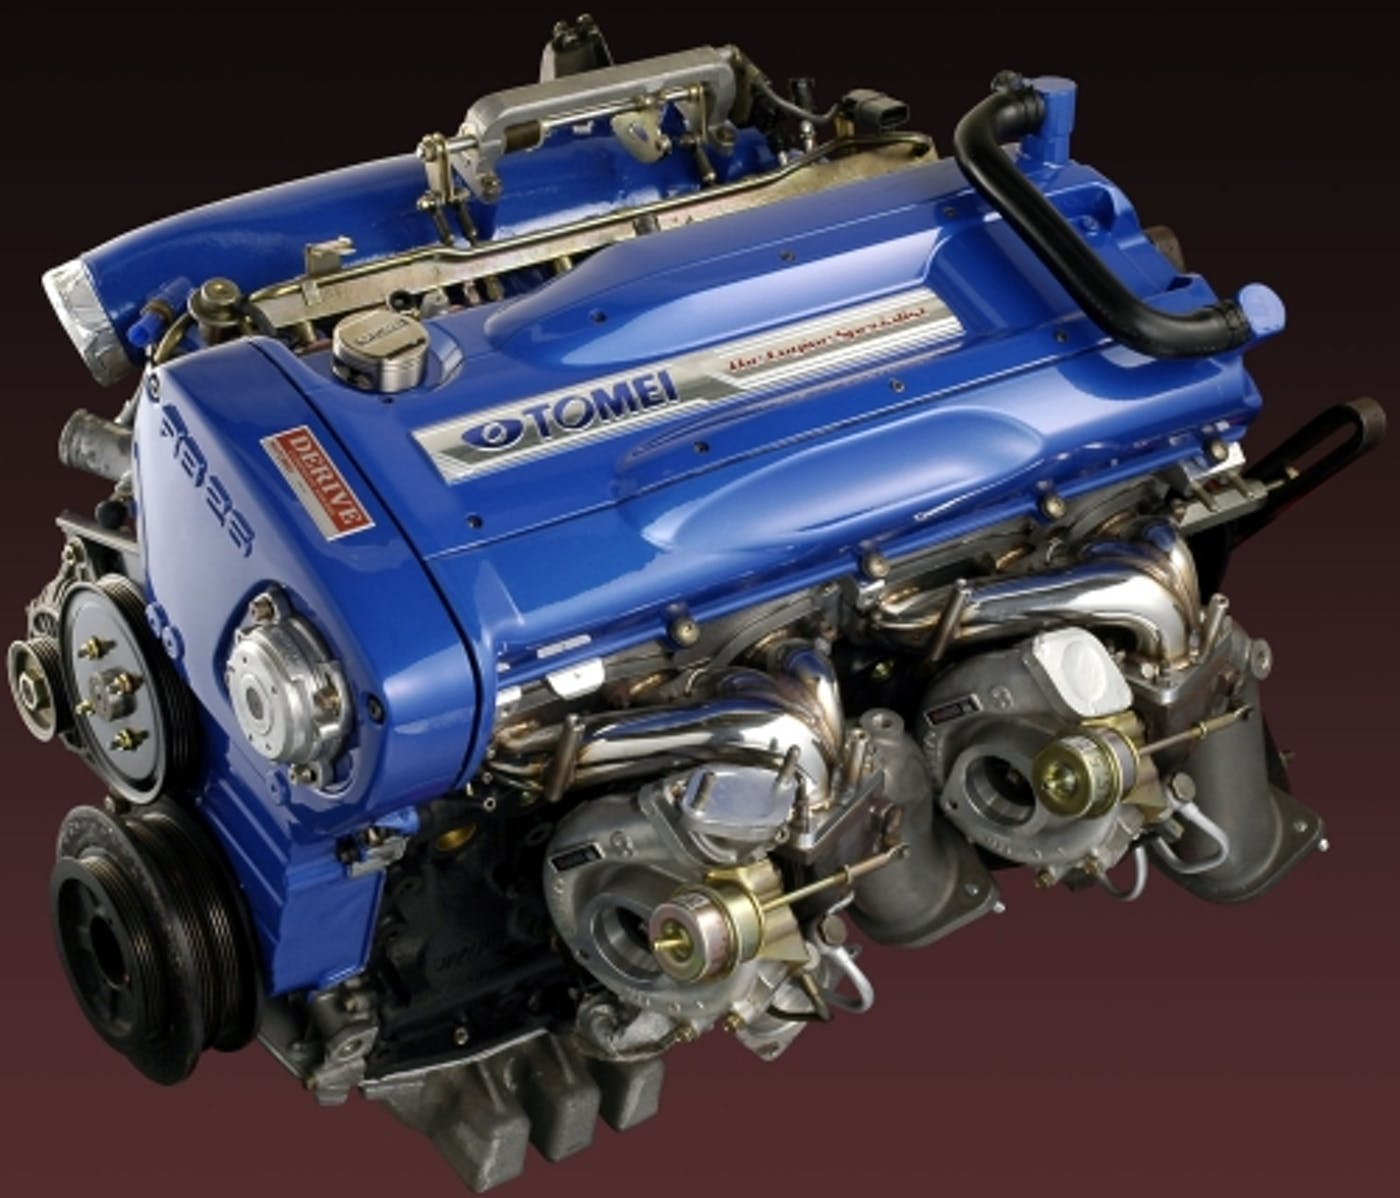 All Nissan JDM engines are cool